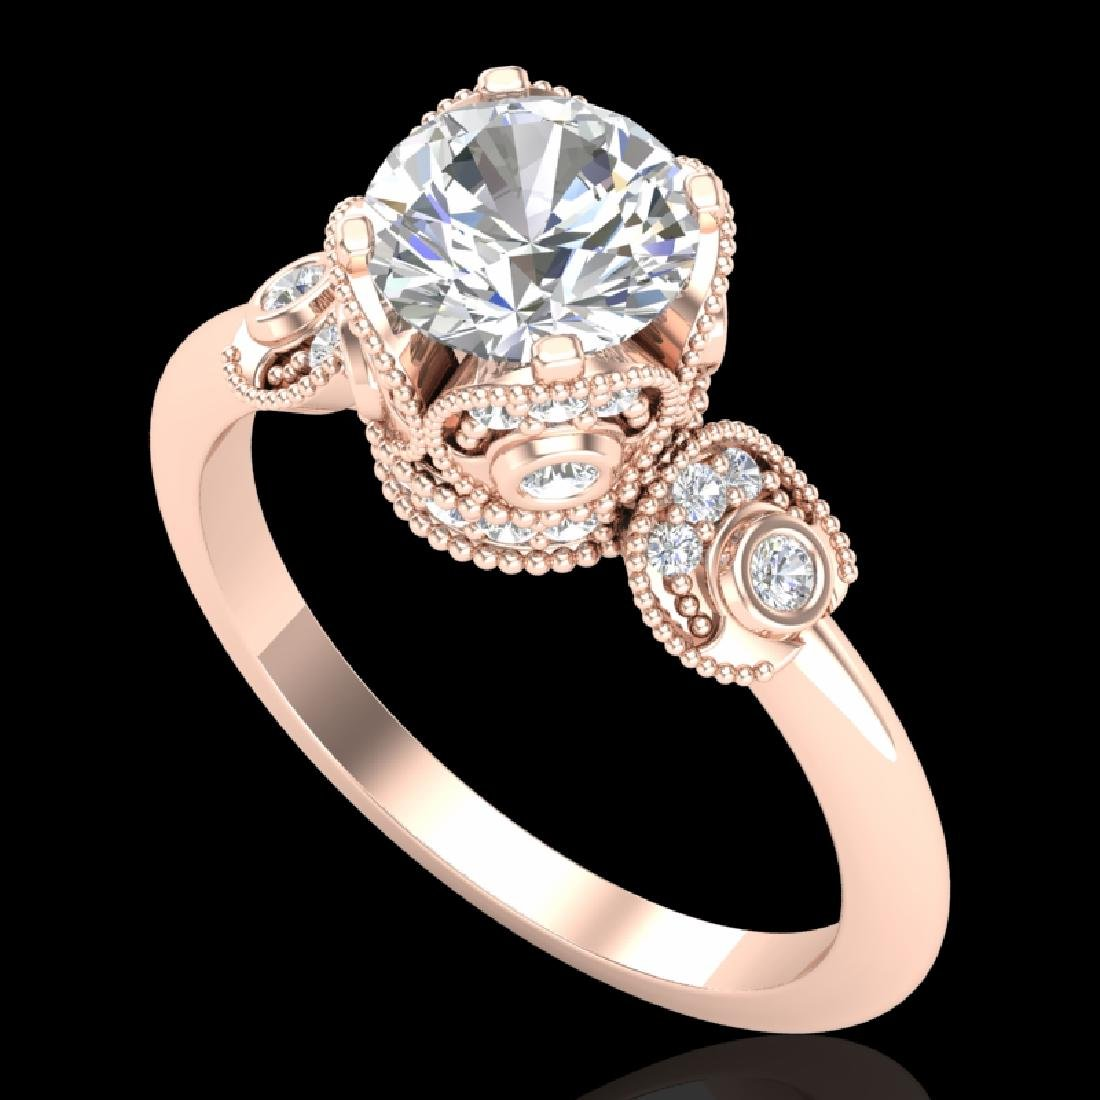 1.75 CTW VS/SI Diamond Solitaire Art Deco Ring 18K Rose